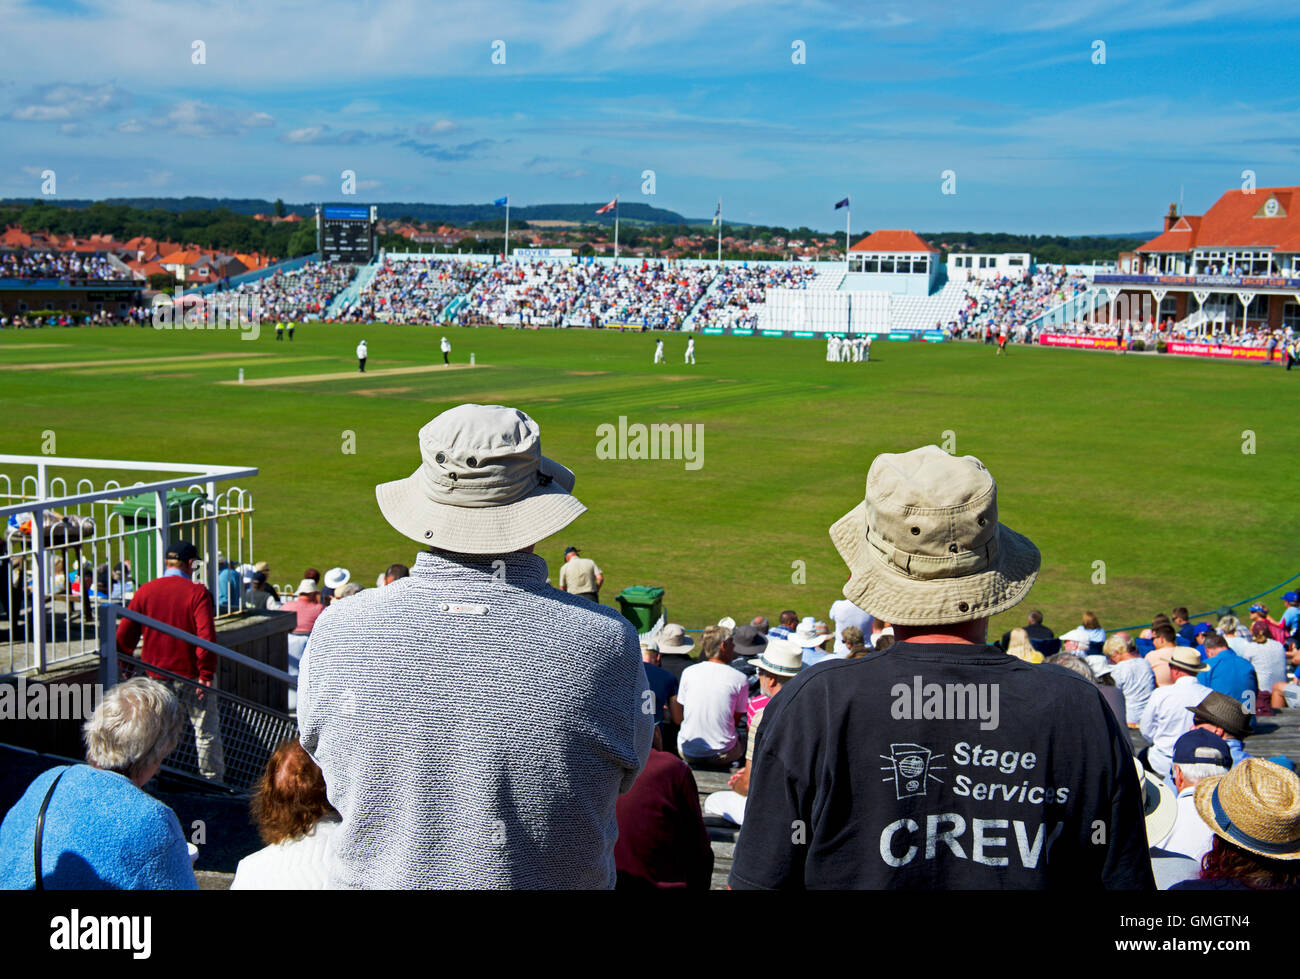 The crowd at Scarborough Cricket Club, North Marine Road, Scarborough, North Yorkshire UK Stock Photo